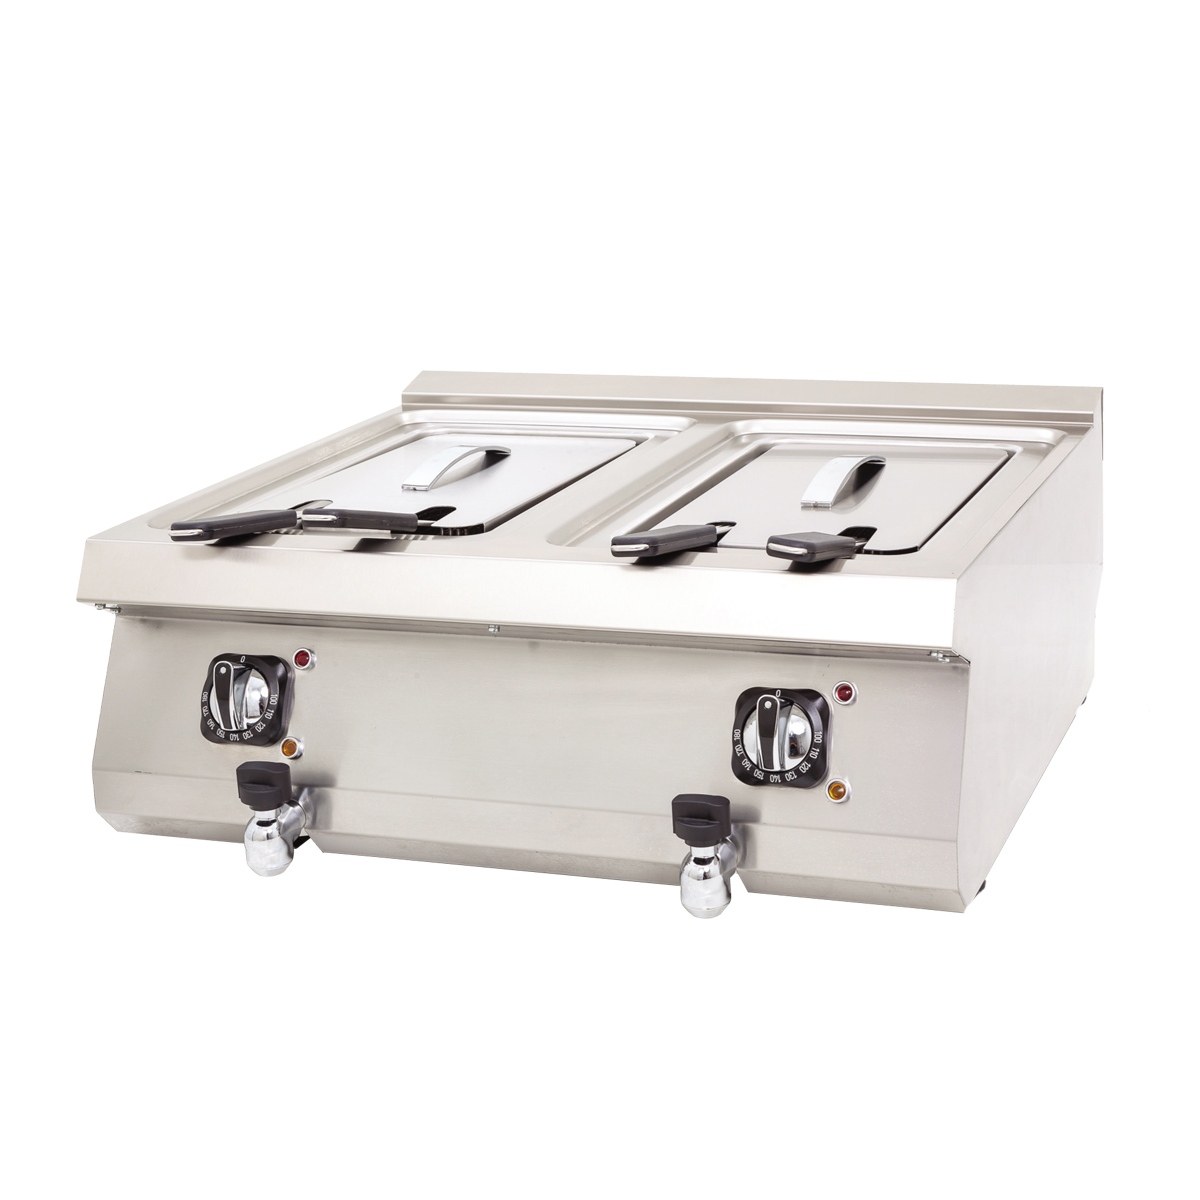 Electric Fryer - 70x60